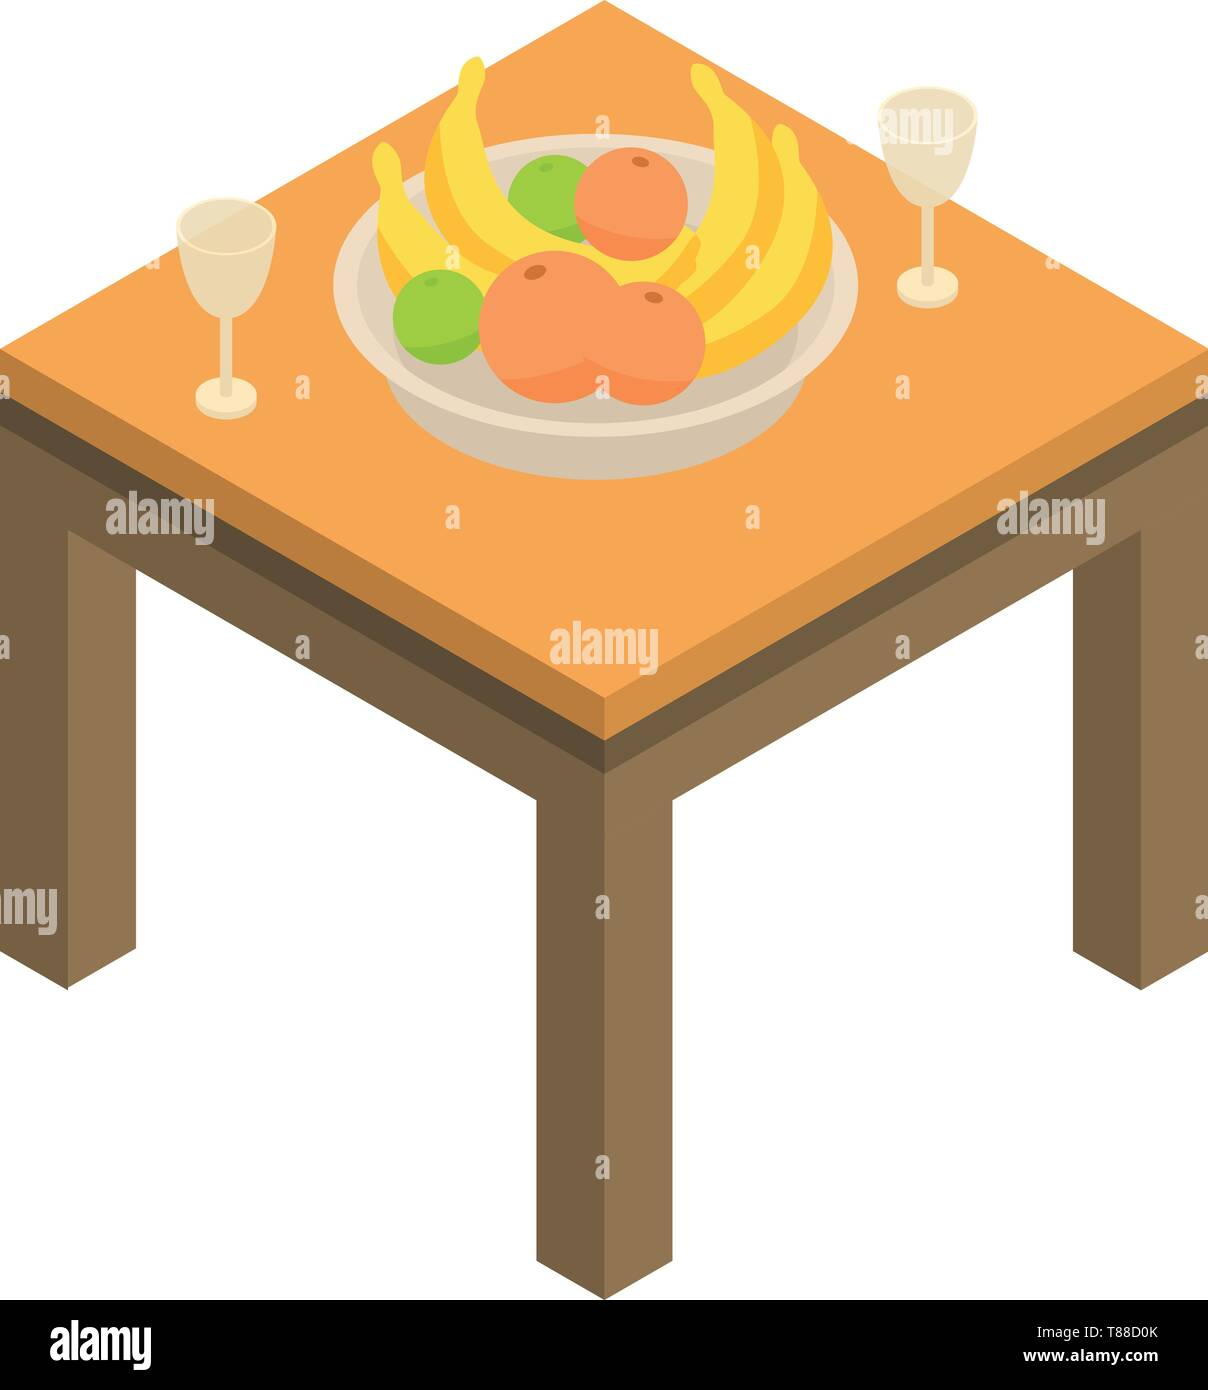 Fruits on table icon, isometric style - Stock Vector